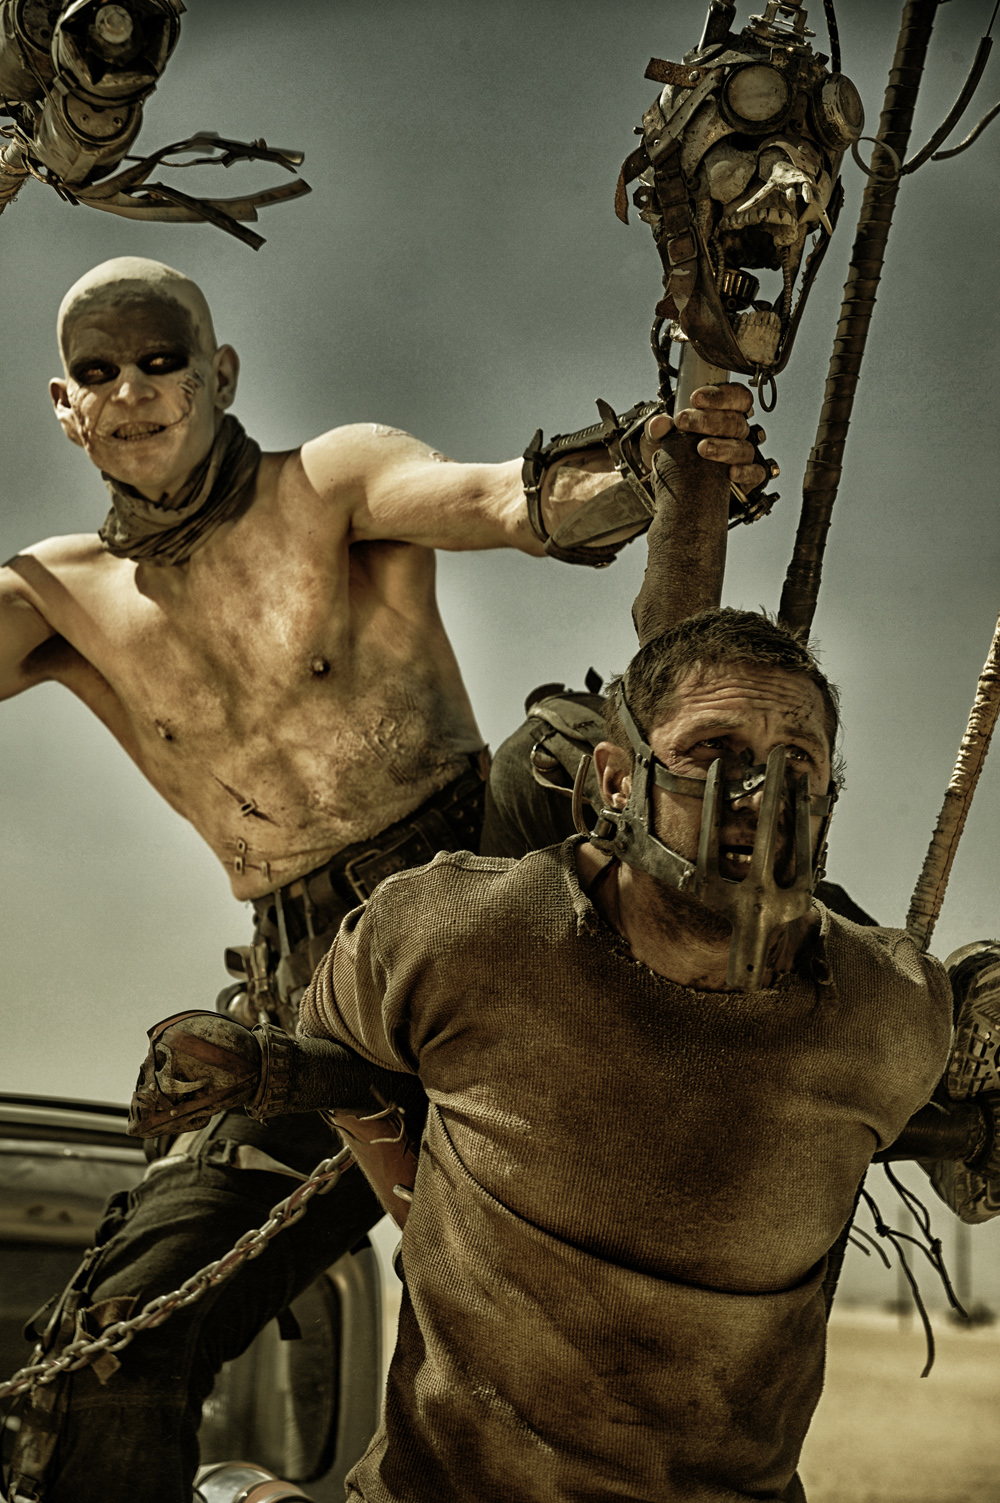 Mad Max pic two